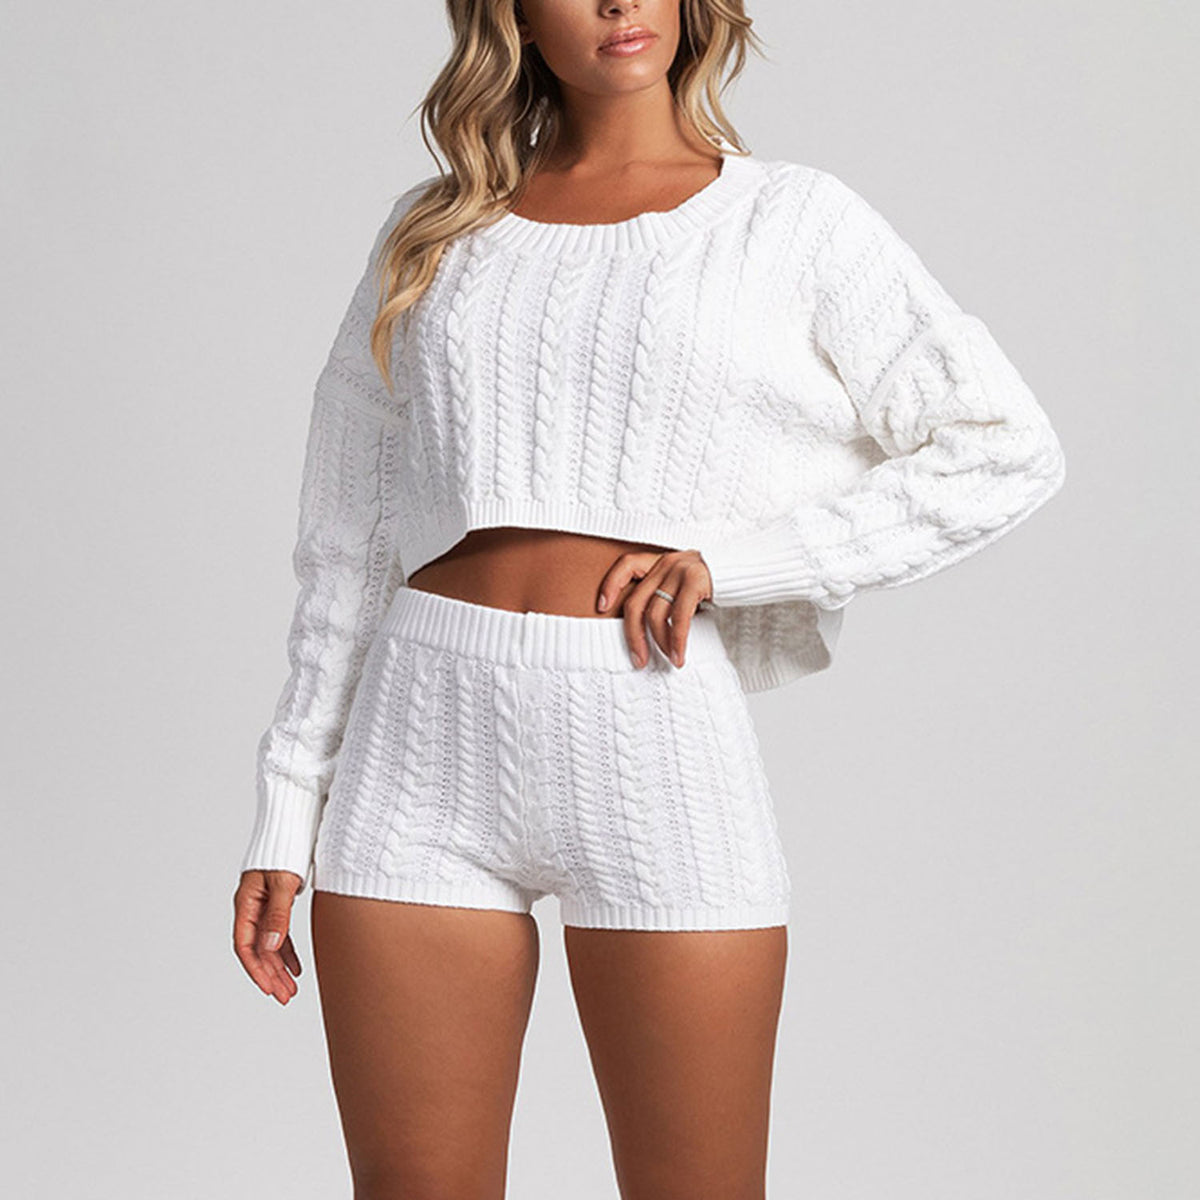 Loose Cable Knit Short Sweater Two Piece Suit